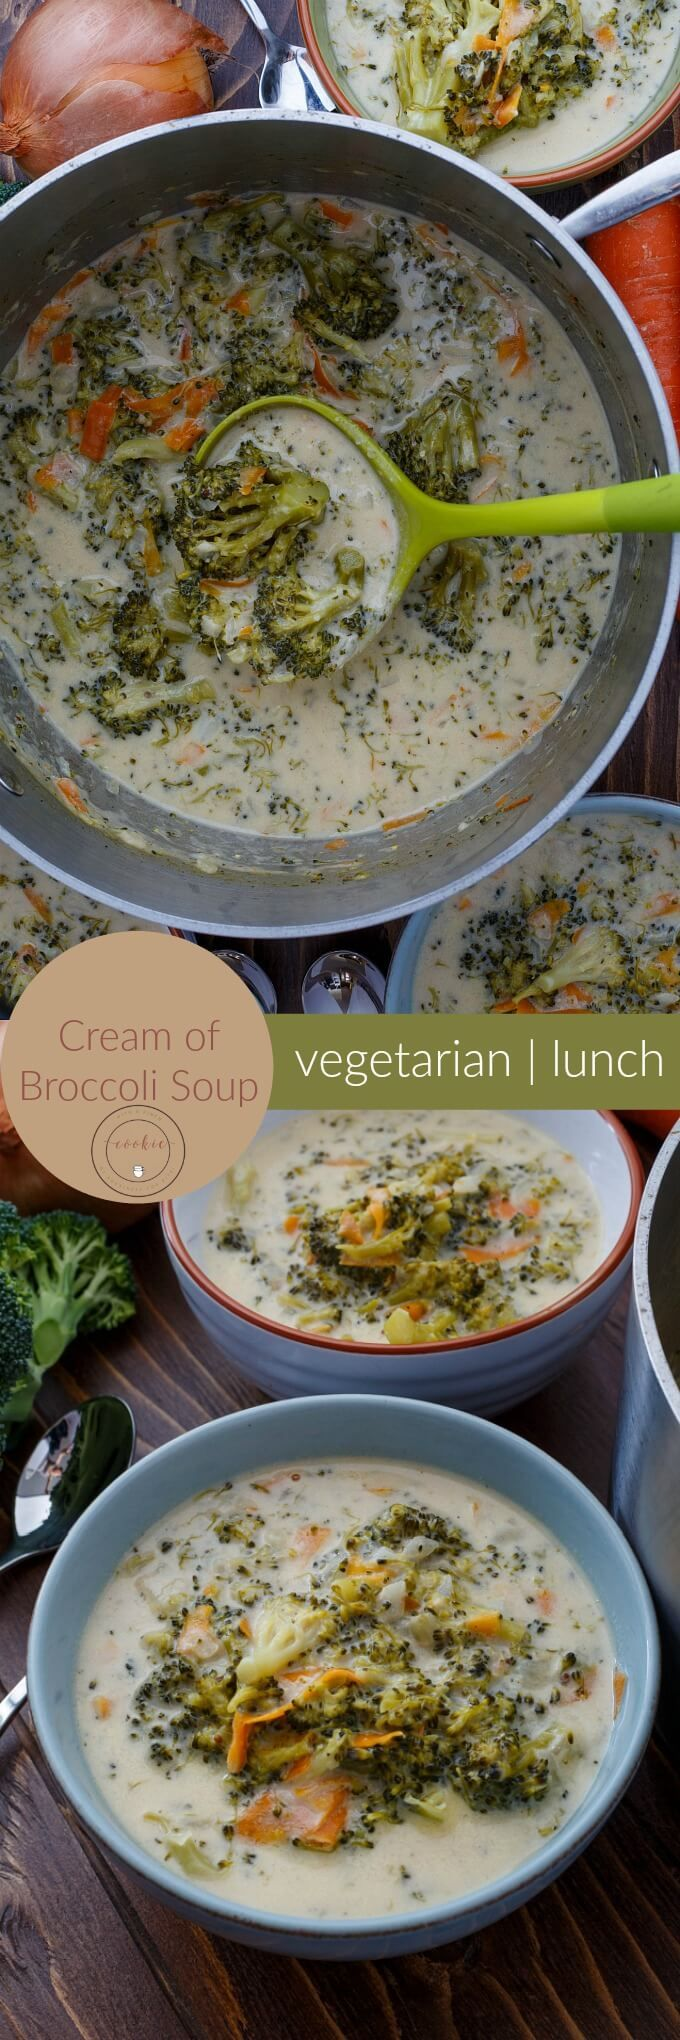 Cream of Broccoli Soup | http://thecookiewriter.com | @thecookiewriter | #soup | Hearty and filling, this vegetarian cream of broccoli soup is perfect on a cold winter's day!